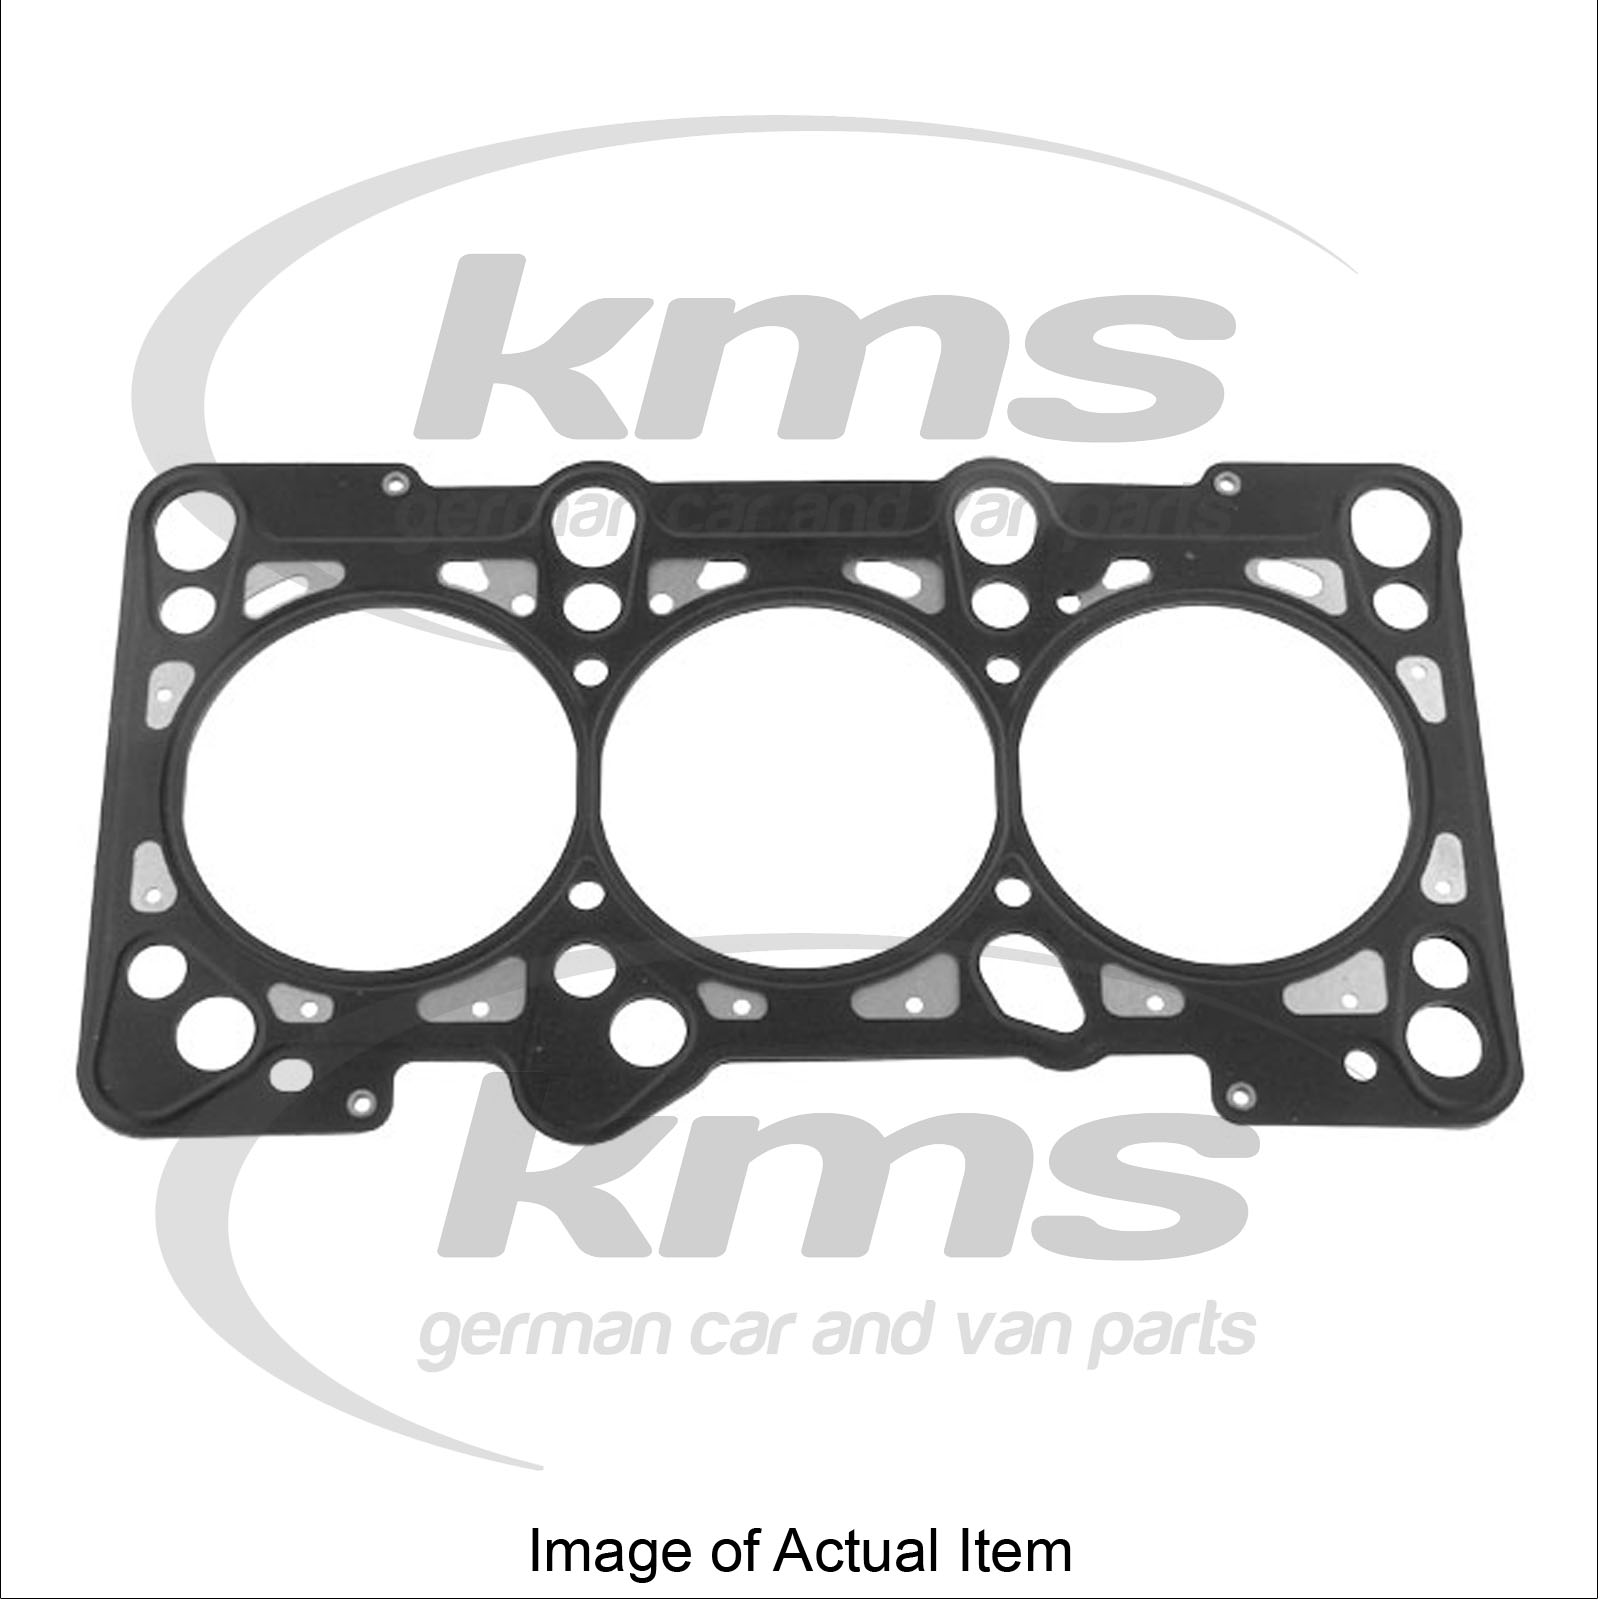 2015 Mini Roadster Head Gasket: CYLINDER HEAD GASKET Audi A4 Convertible B6 (2001-2006) 2